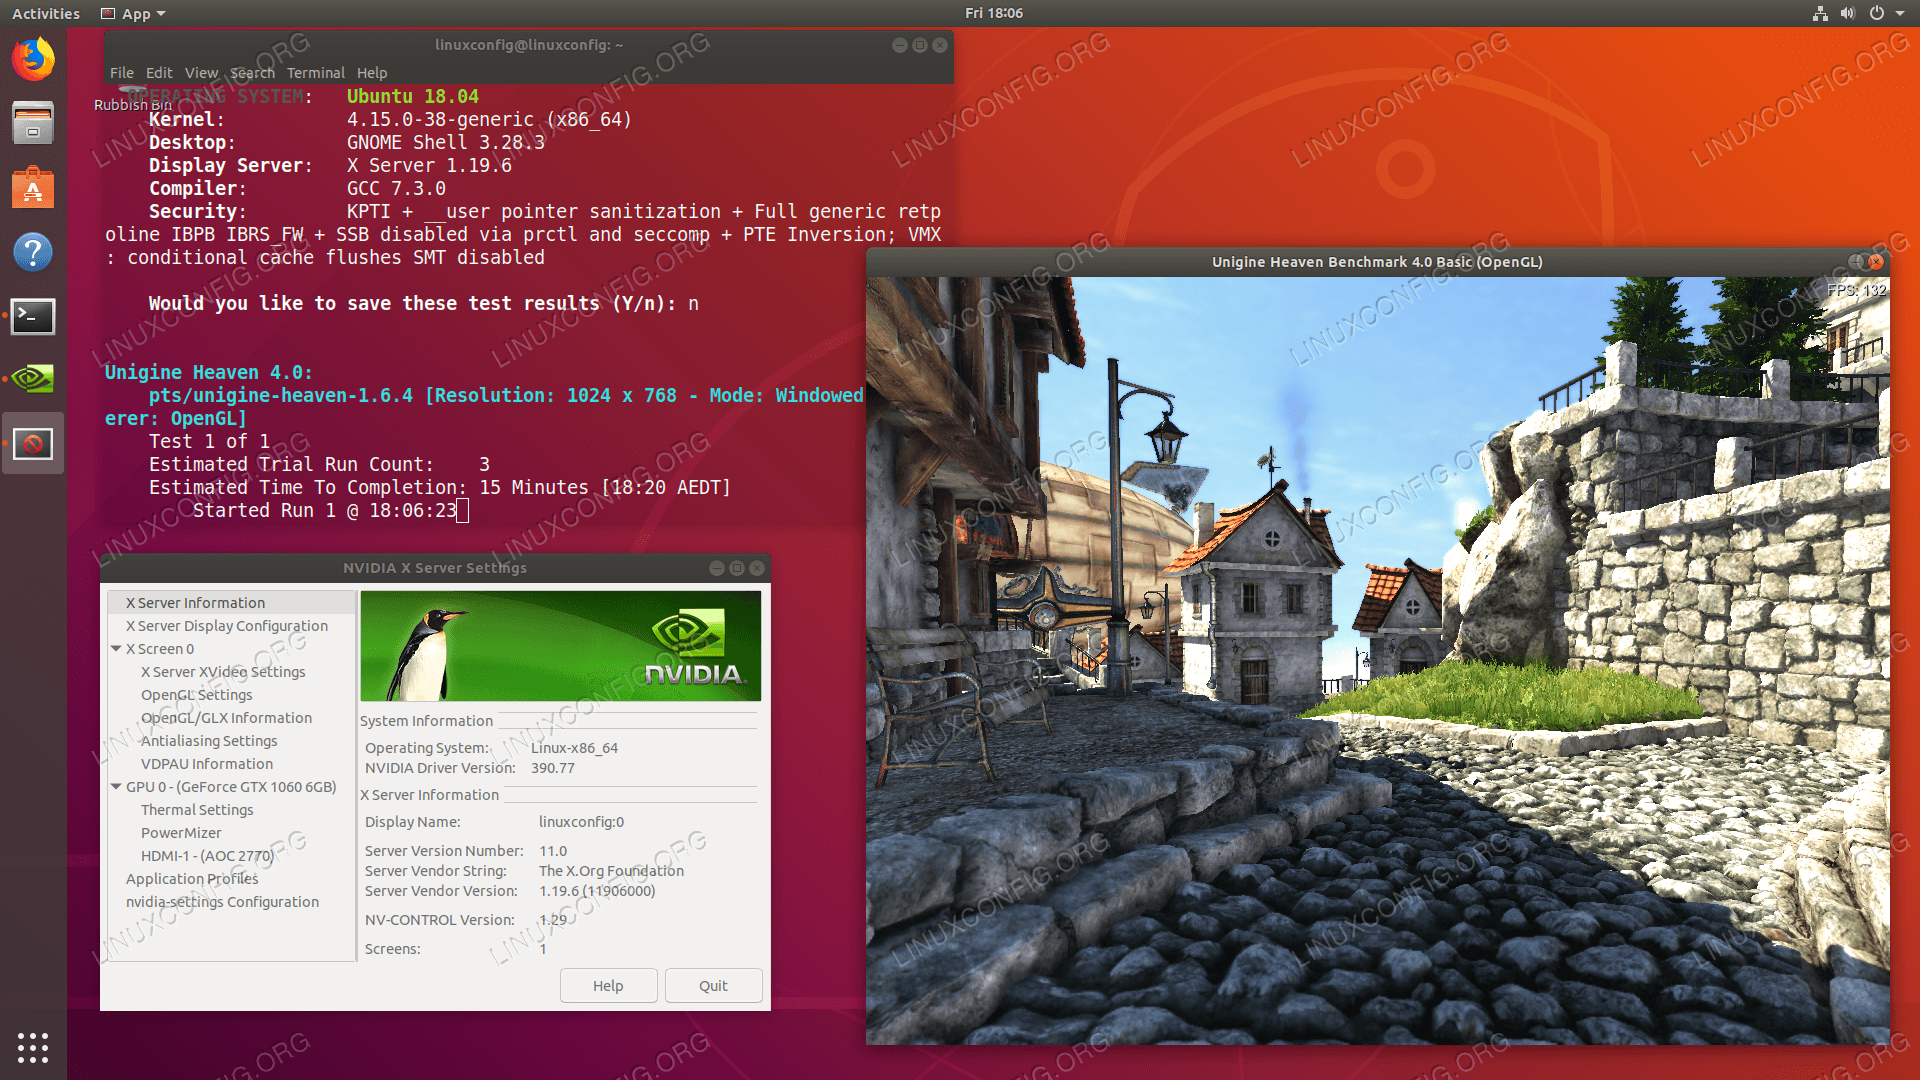 How to install the NVIDIA drivers on Ubuntu 18 04 Bionic